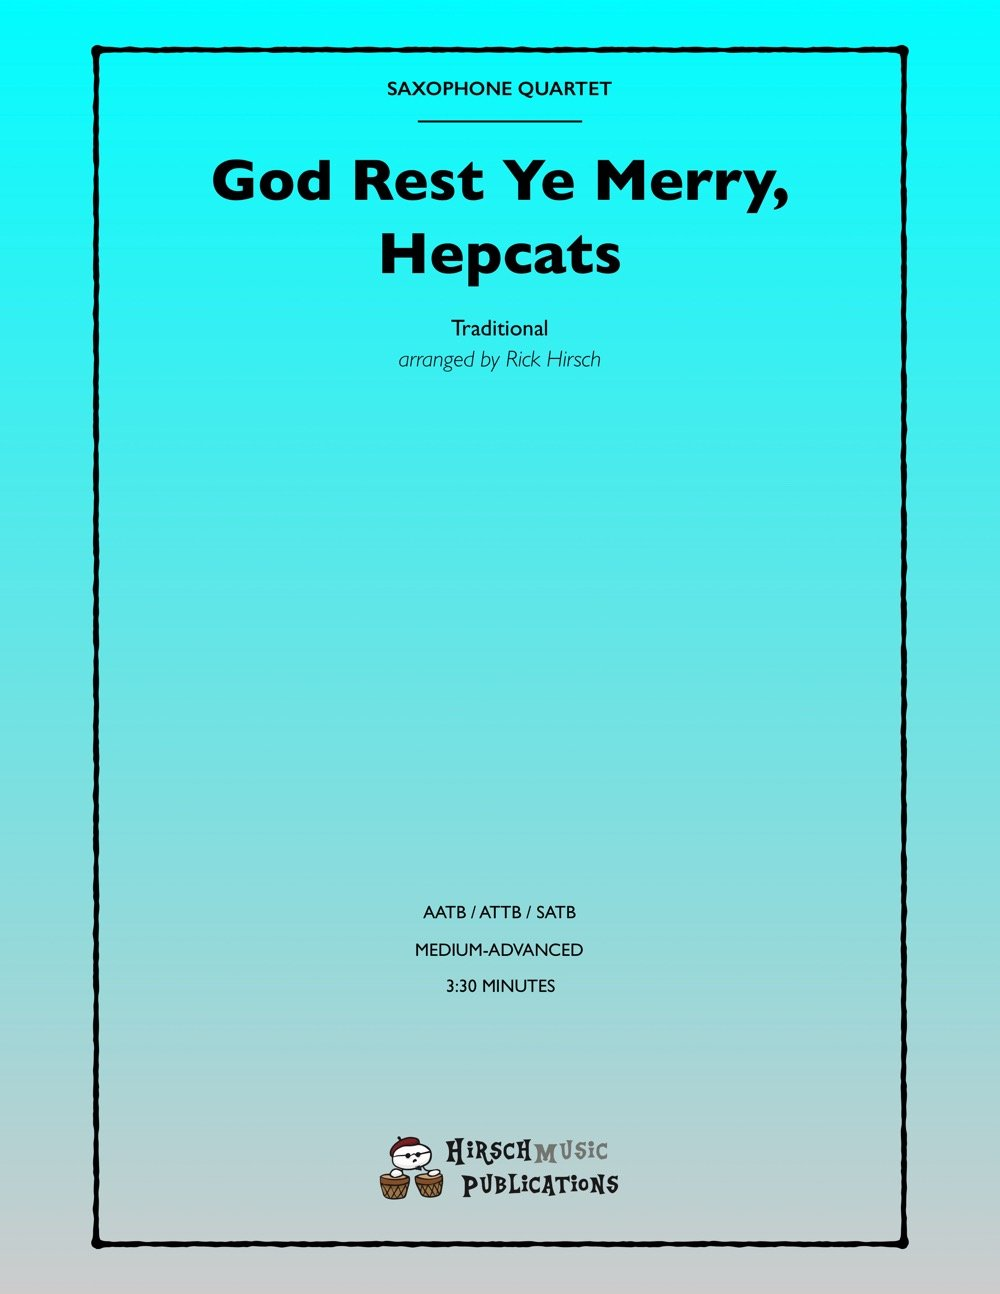 God Rest Ye Merry, Hepcats